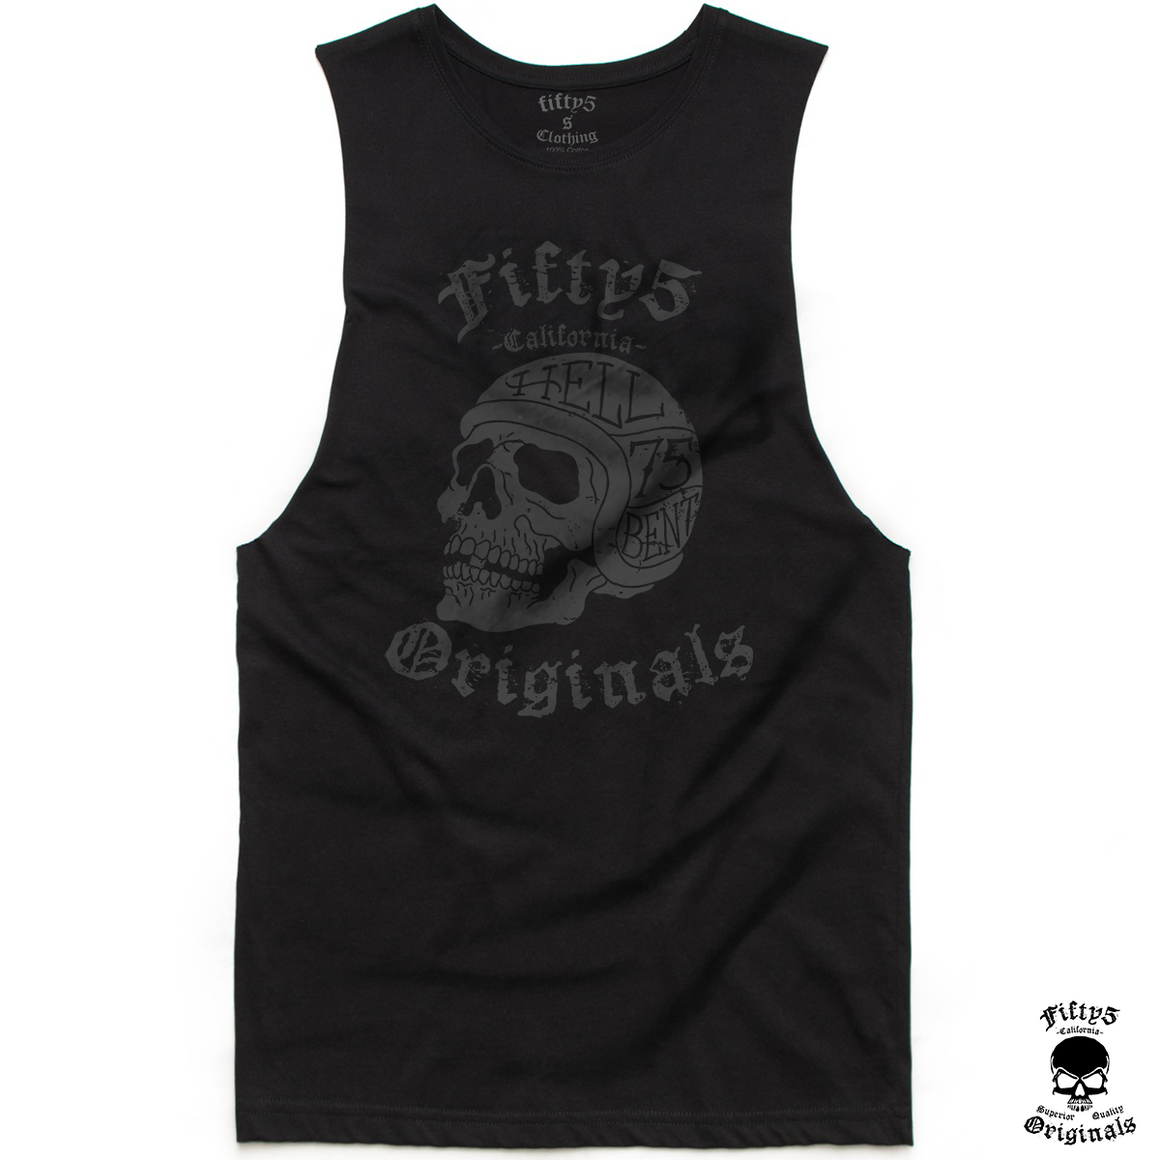 Fifty5 Originals Hell Bent Mens Muscle Tank